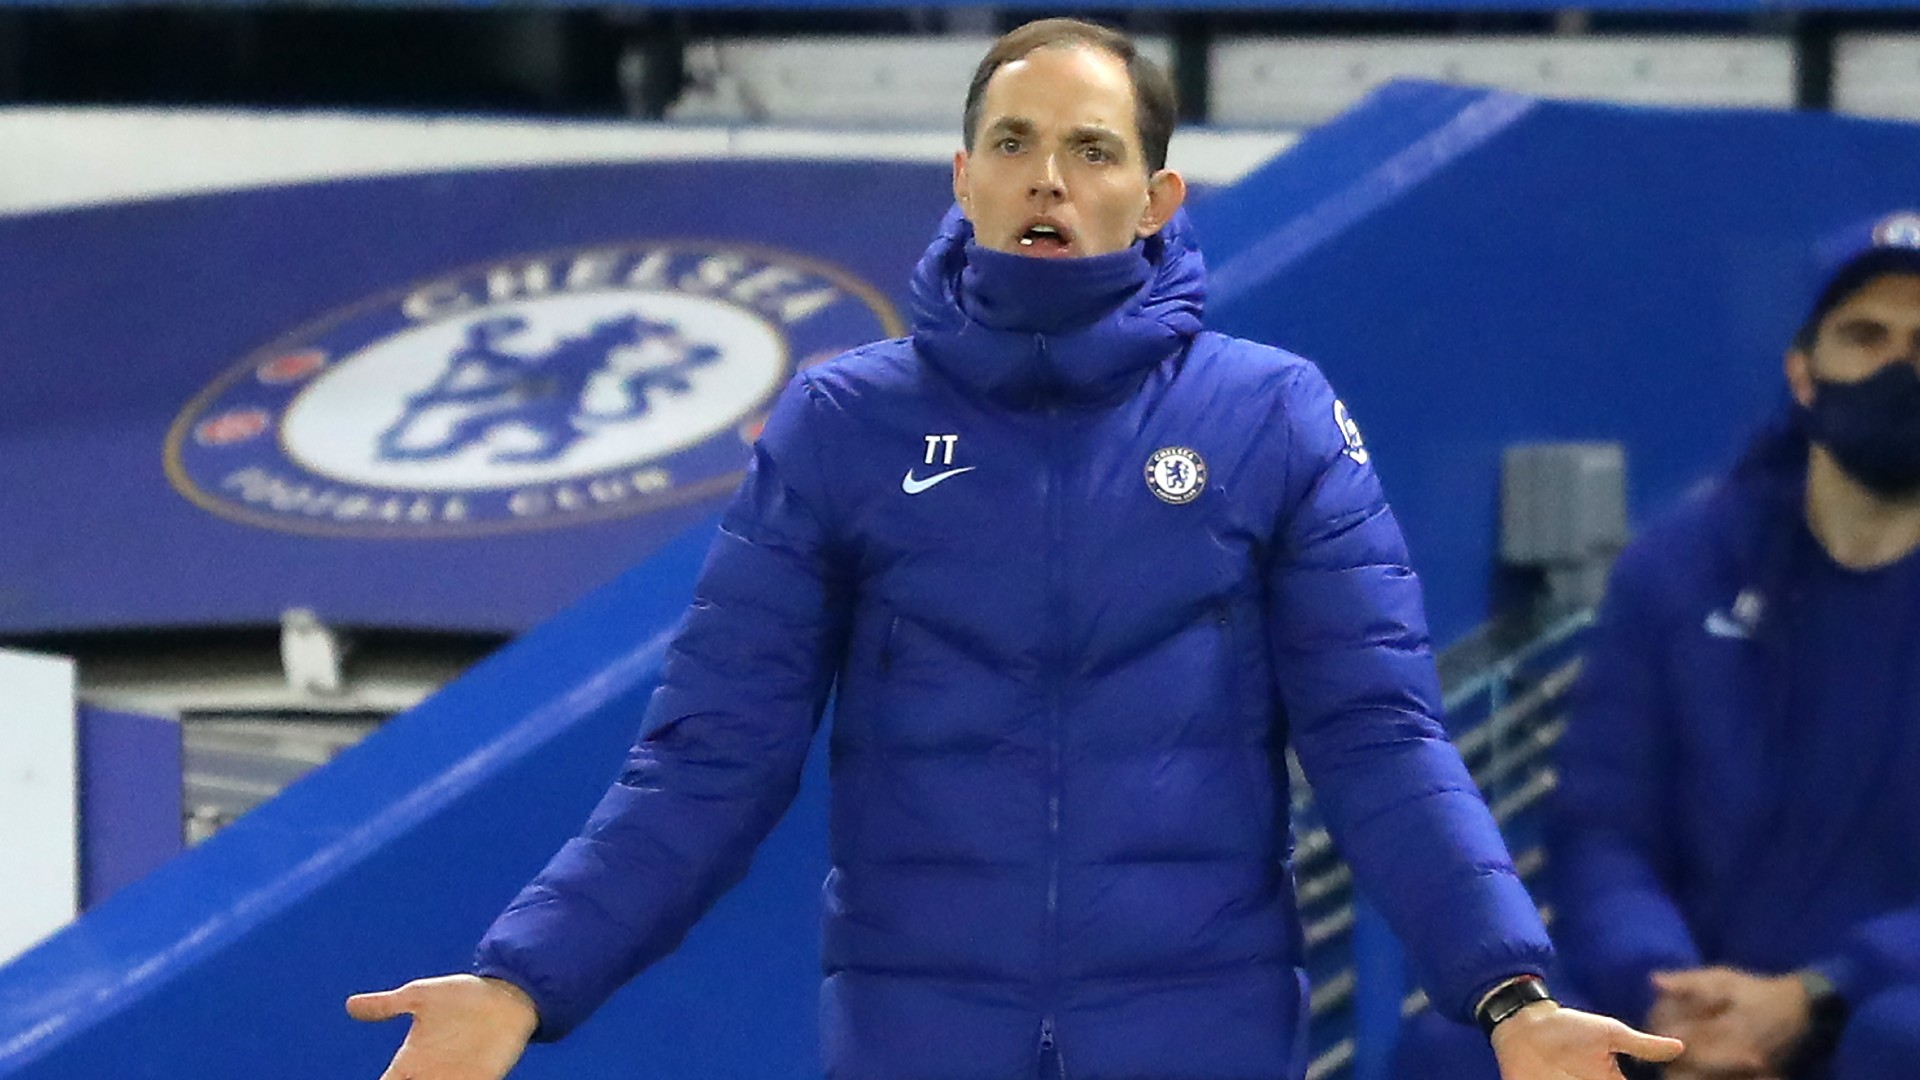 'Are you at the right press conference?' - Chelsea boss Tuchel shuts down question on Alli to PSG rumours